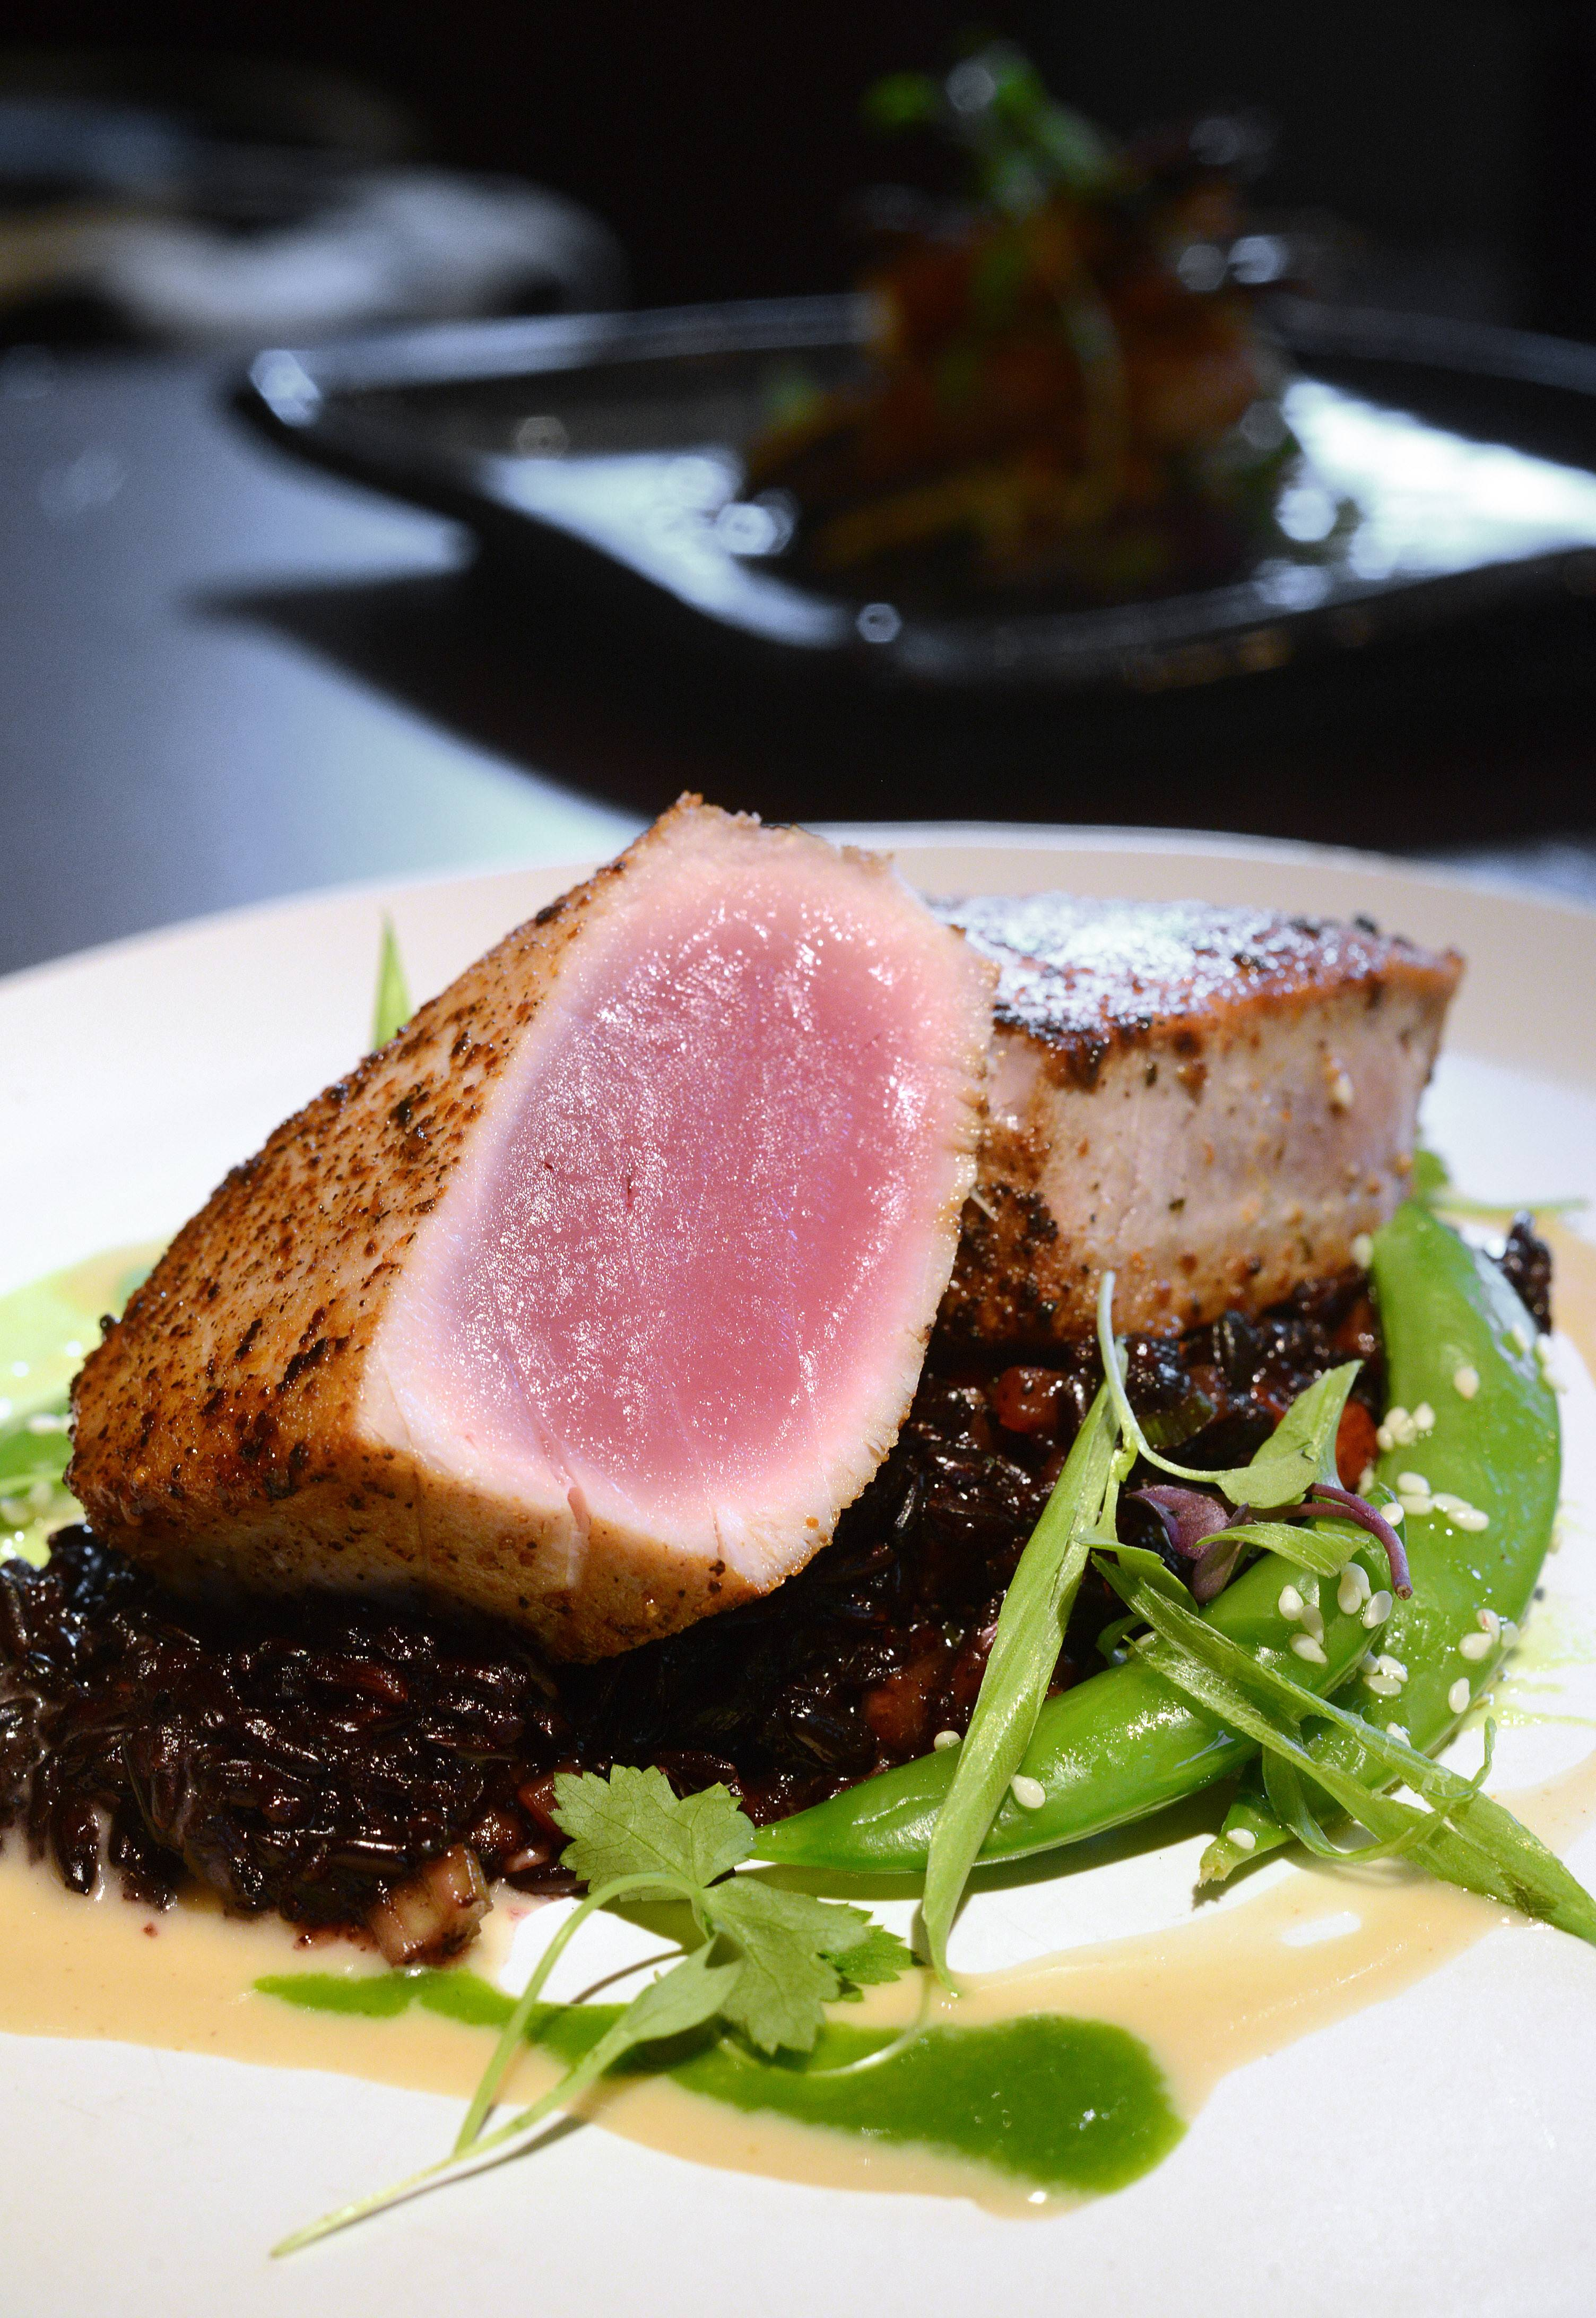 Seared ahi tuna rests on a bed of sticky purple rice at Niche in Geneva. The dish is accented with coconut shellfish cream, edamame purée and honeyed snap peas.